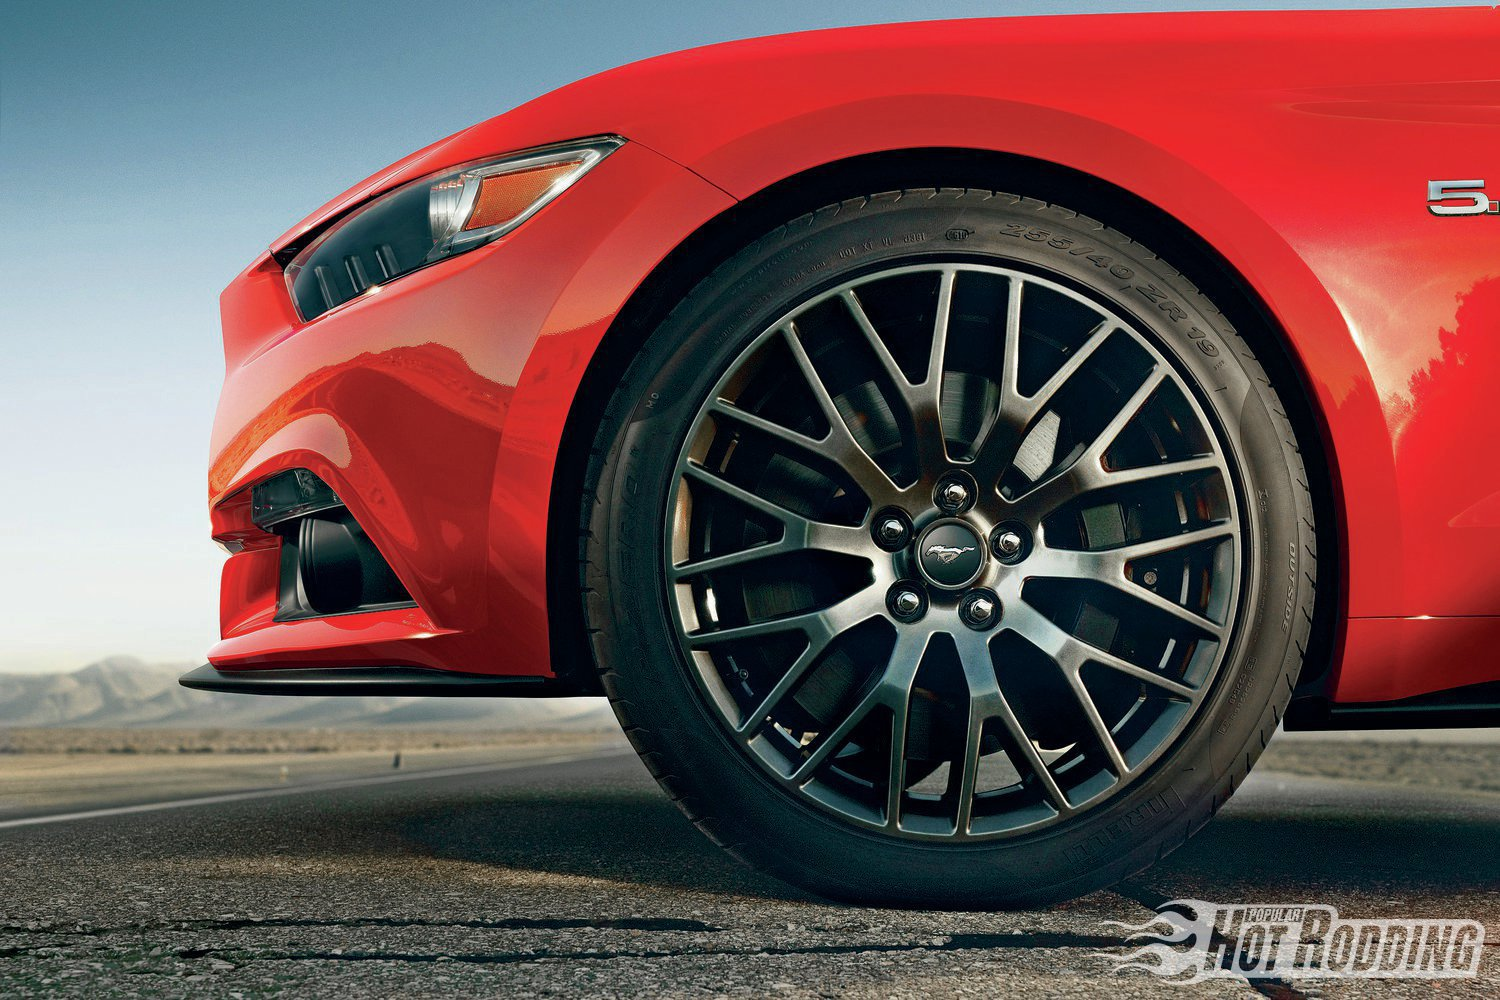 The wheel openings appear perfectly round, as though drawn with a compass, to make the wheels and tires appear even larger. The optional performance package on the V-8 GT includes 19-inch front/20-inch rear wheels, with six-piston brake calipers and 15-inch rotors.